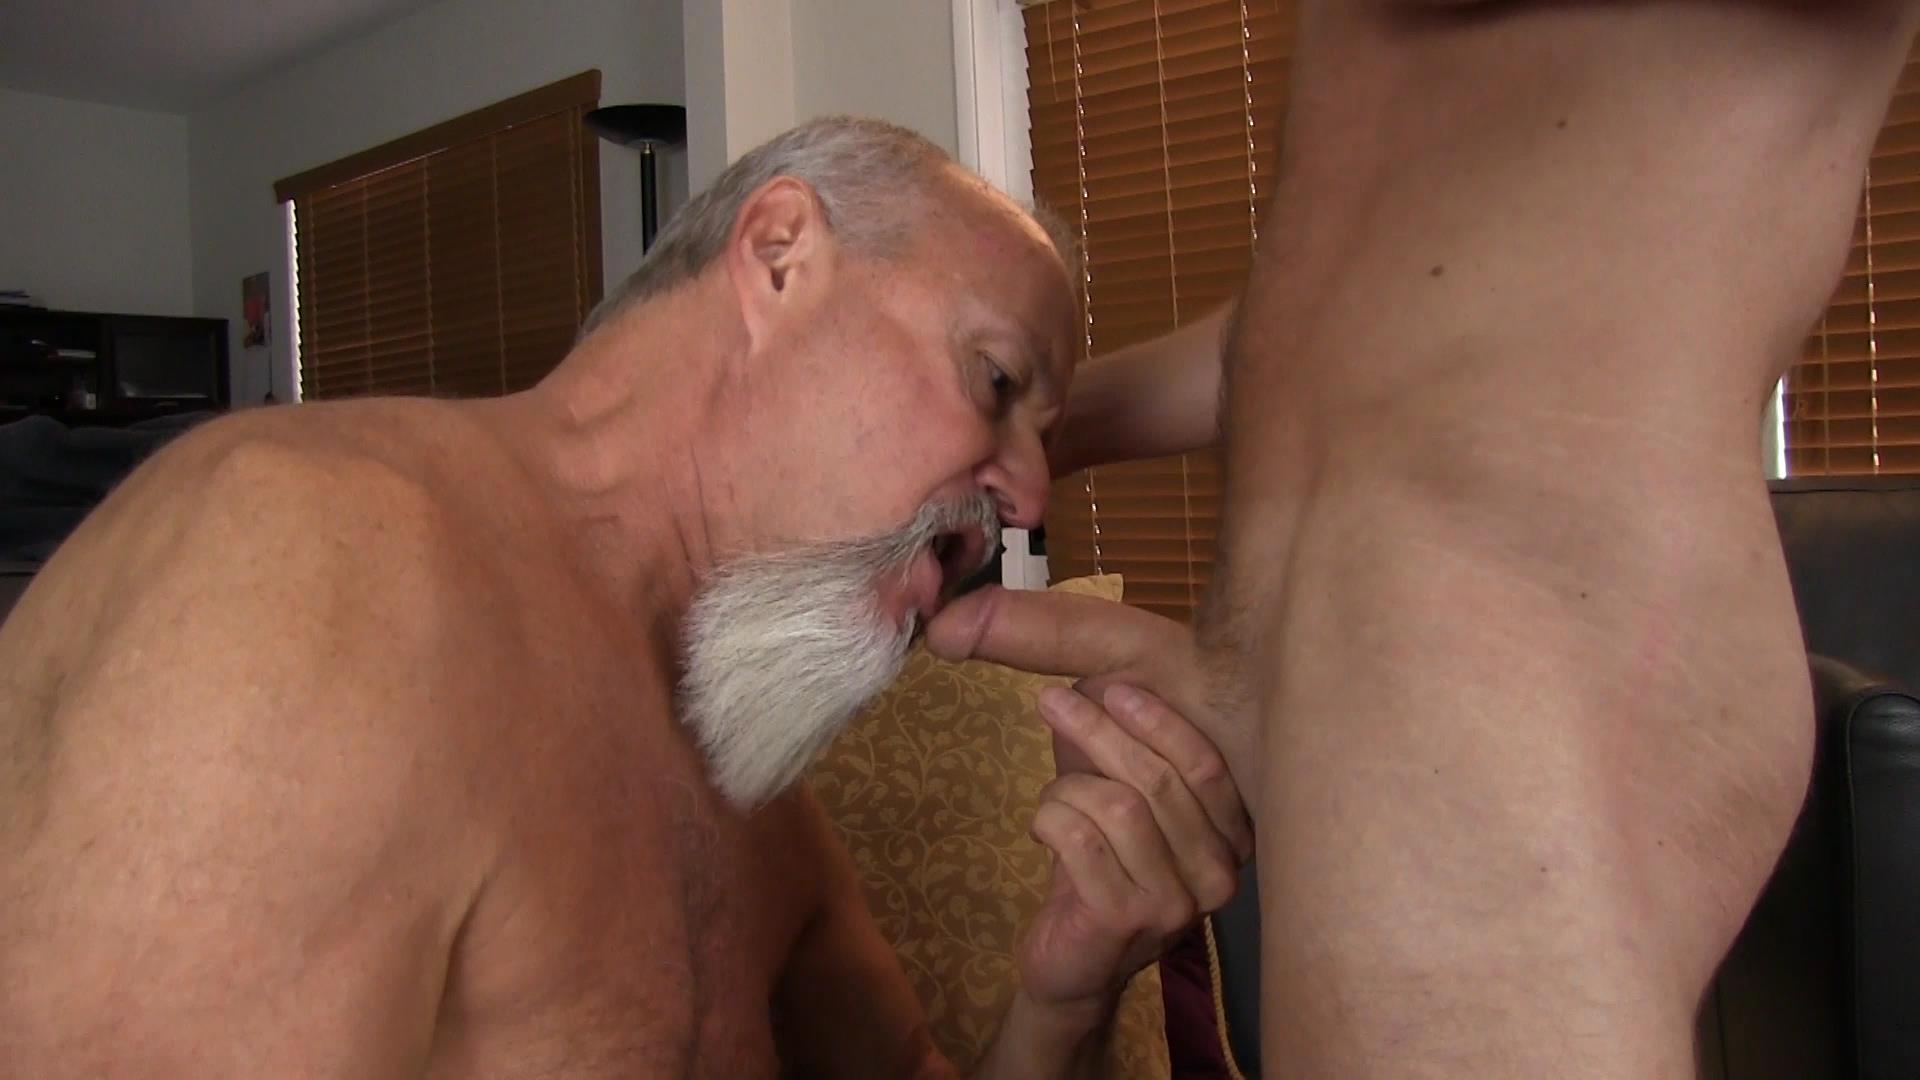 Bareback-Me-Daddy-Silver-Daddy-Barebacks-Younger-Guy-Amateur-Gay-Porn-03 Getting Barebacked By A Thick Daddy Dick